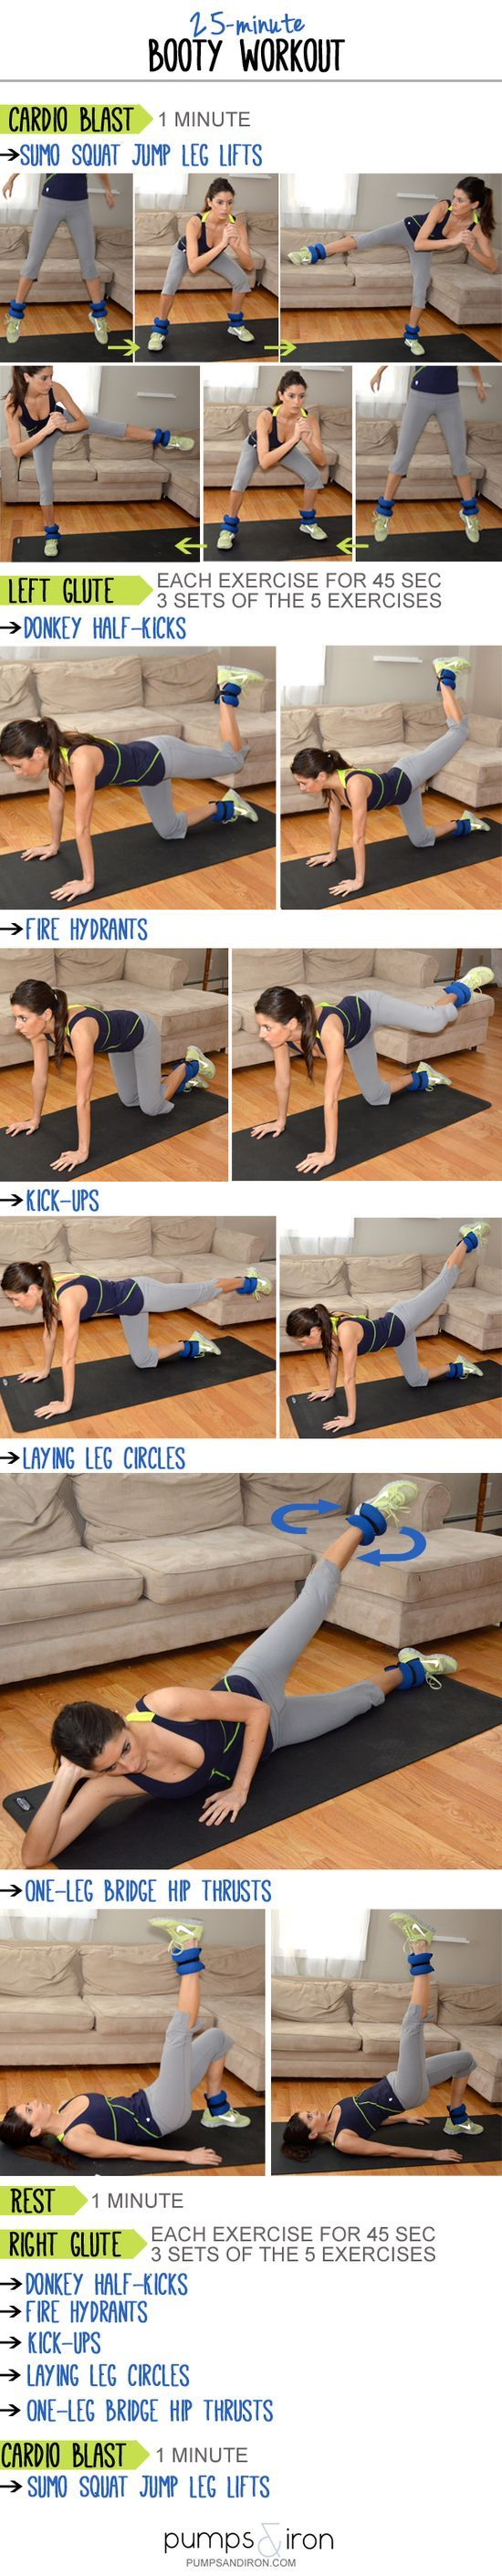 25 Minute Booty Exercise Fitnessworkouts Pinterest Exercises Full Body Circuit Workout With Weights Workouts